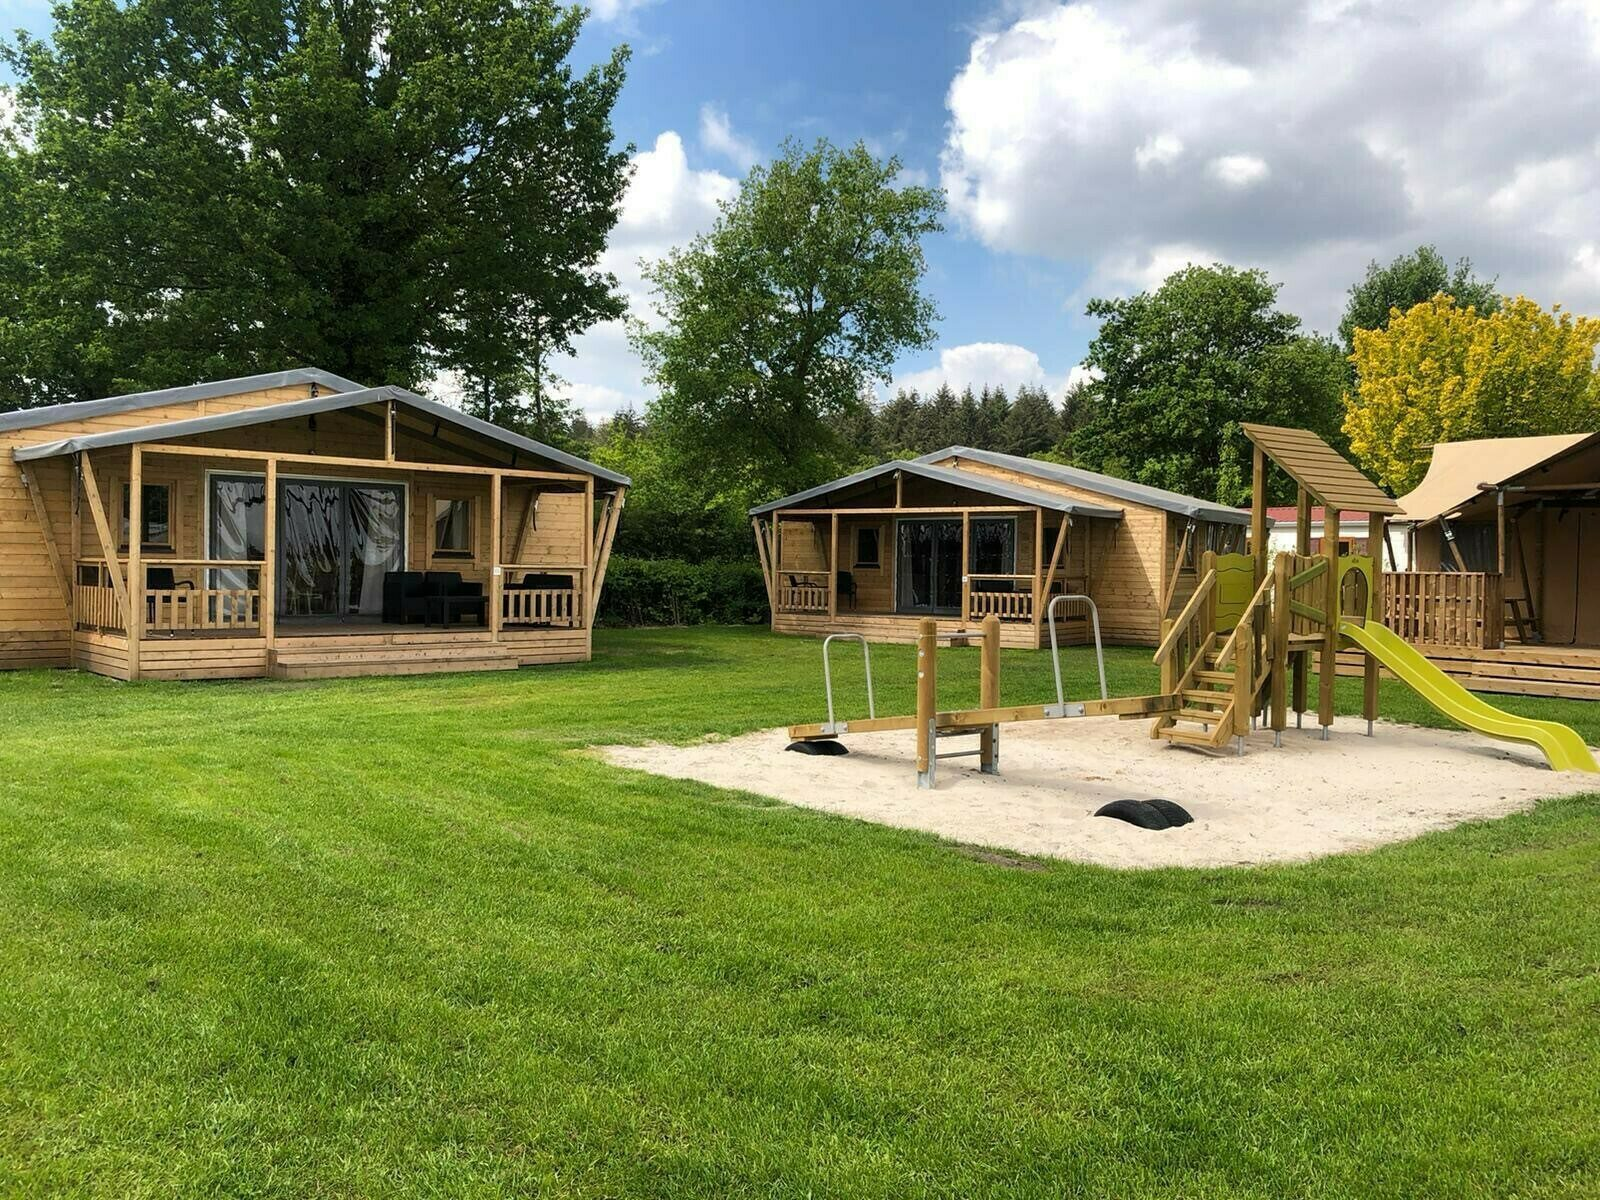 Tenthouse - Camping 't Veld